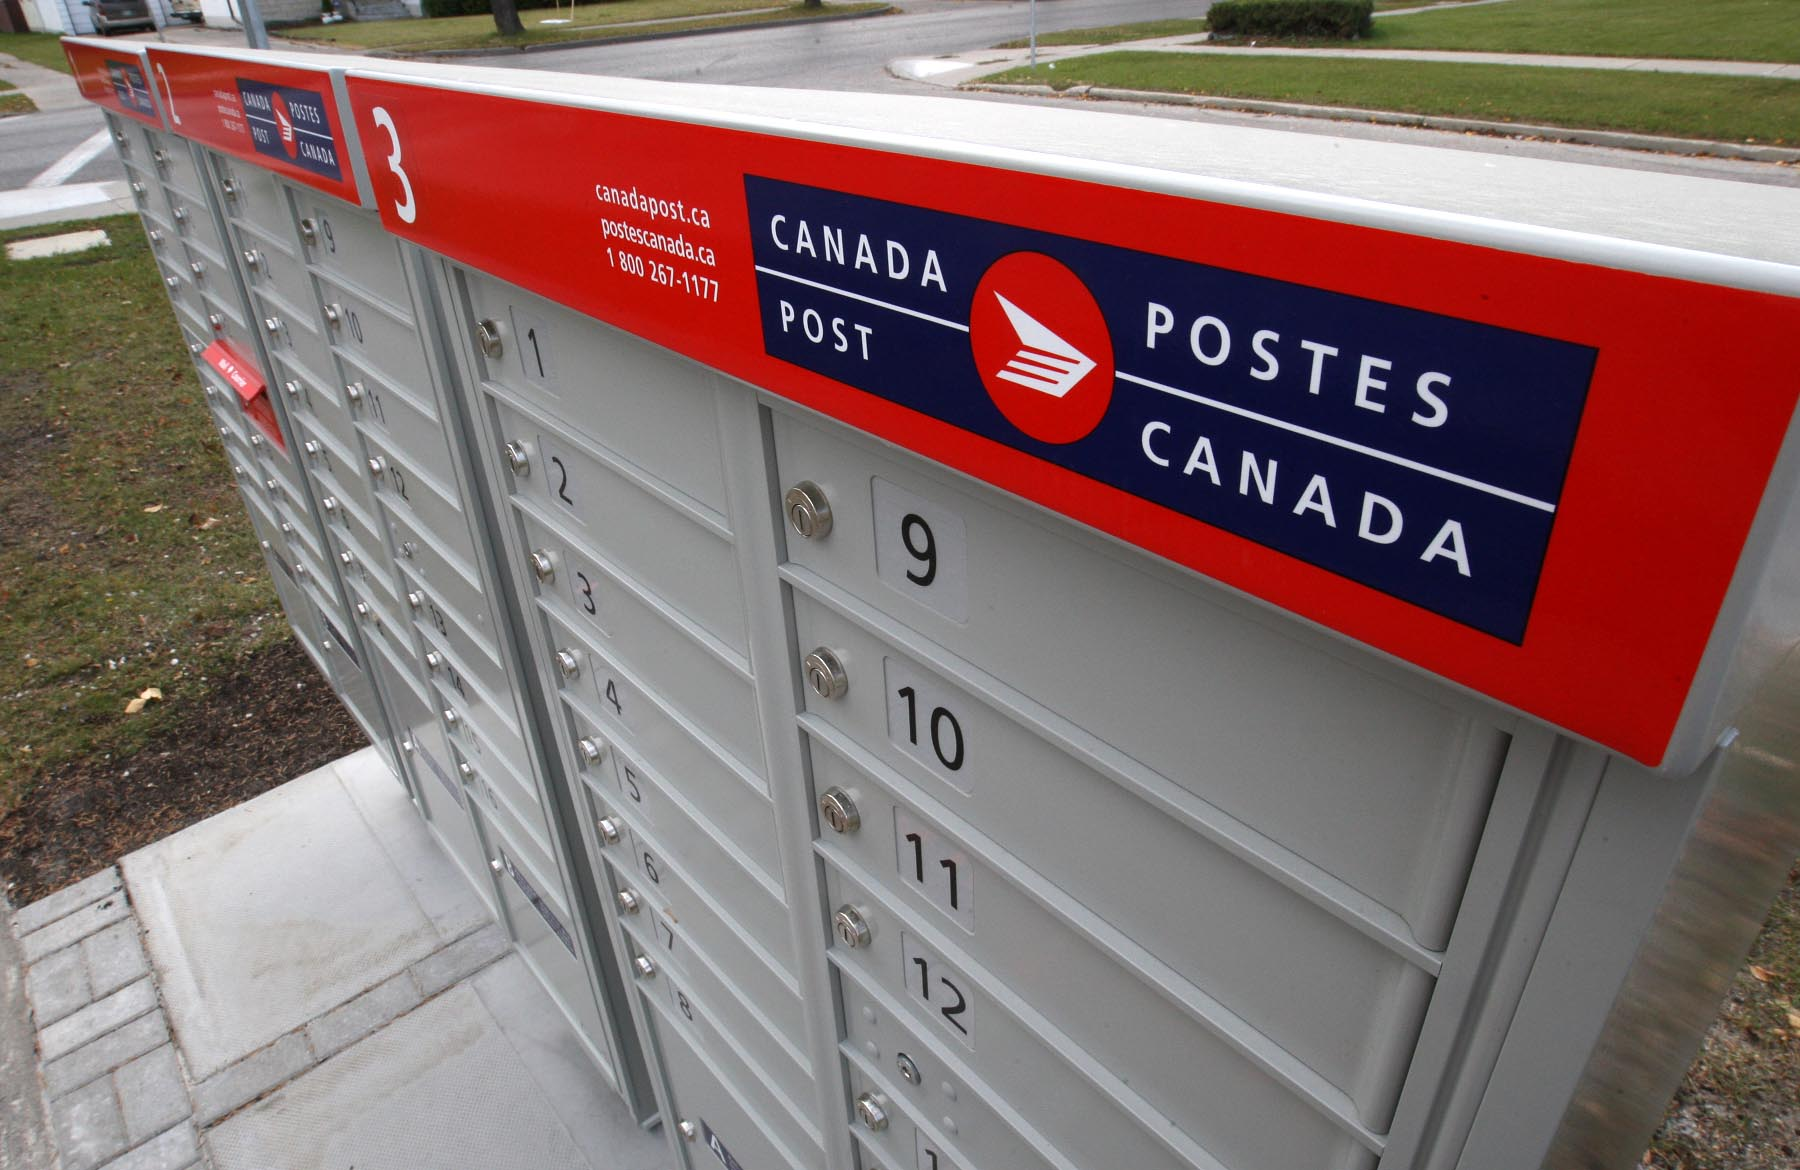 A Kansas company has won the contract for Canada Post's community mailboxes.